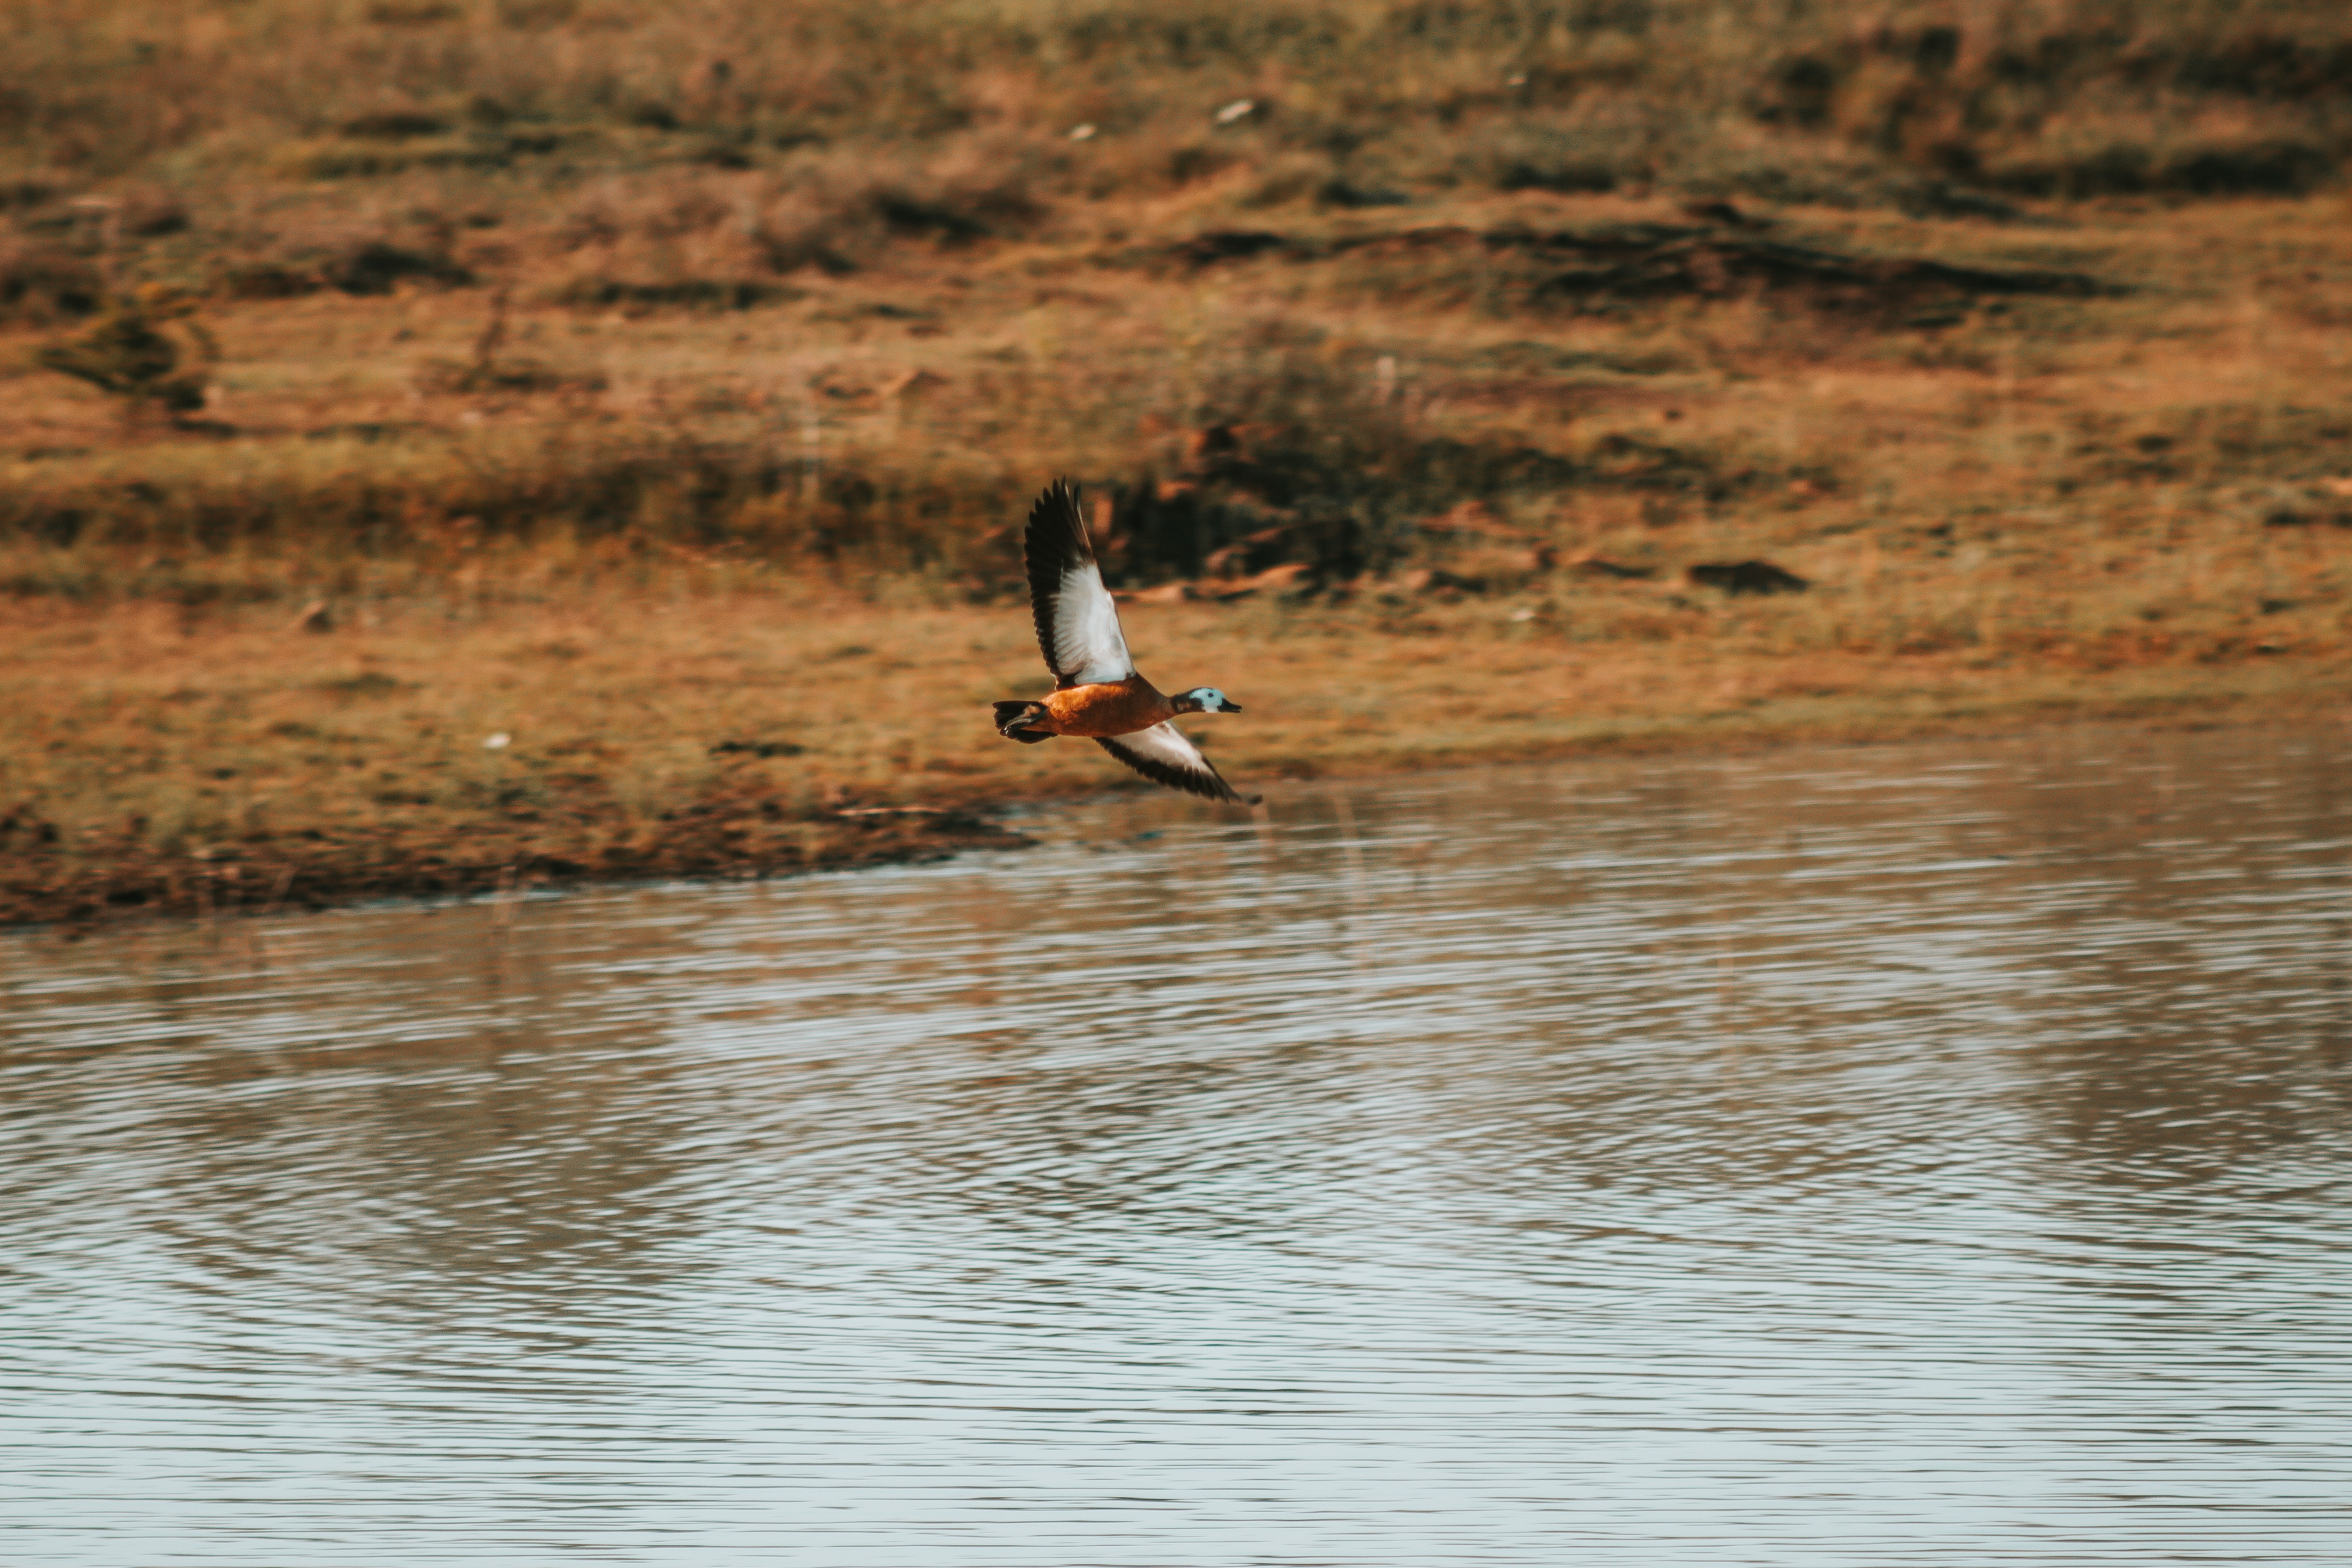 flying mallard duck above body of water during daytime